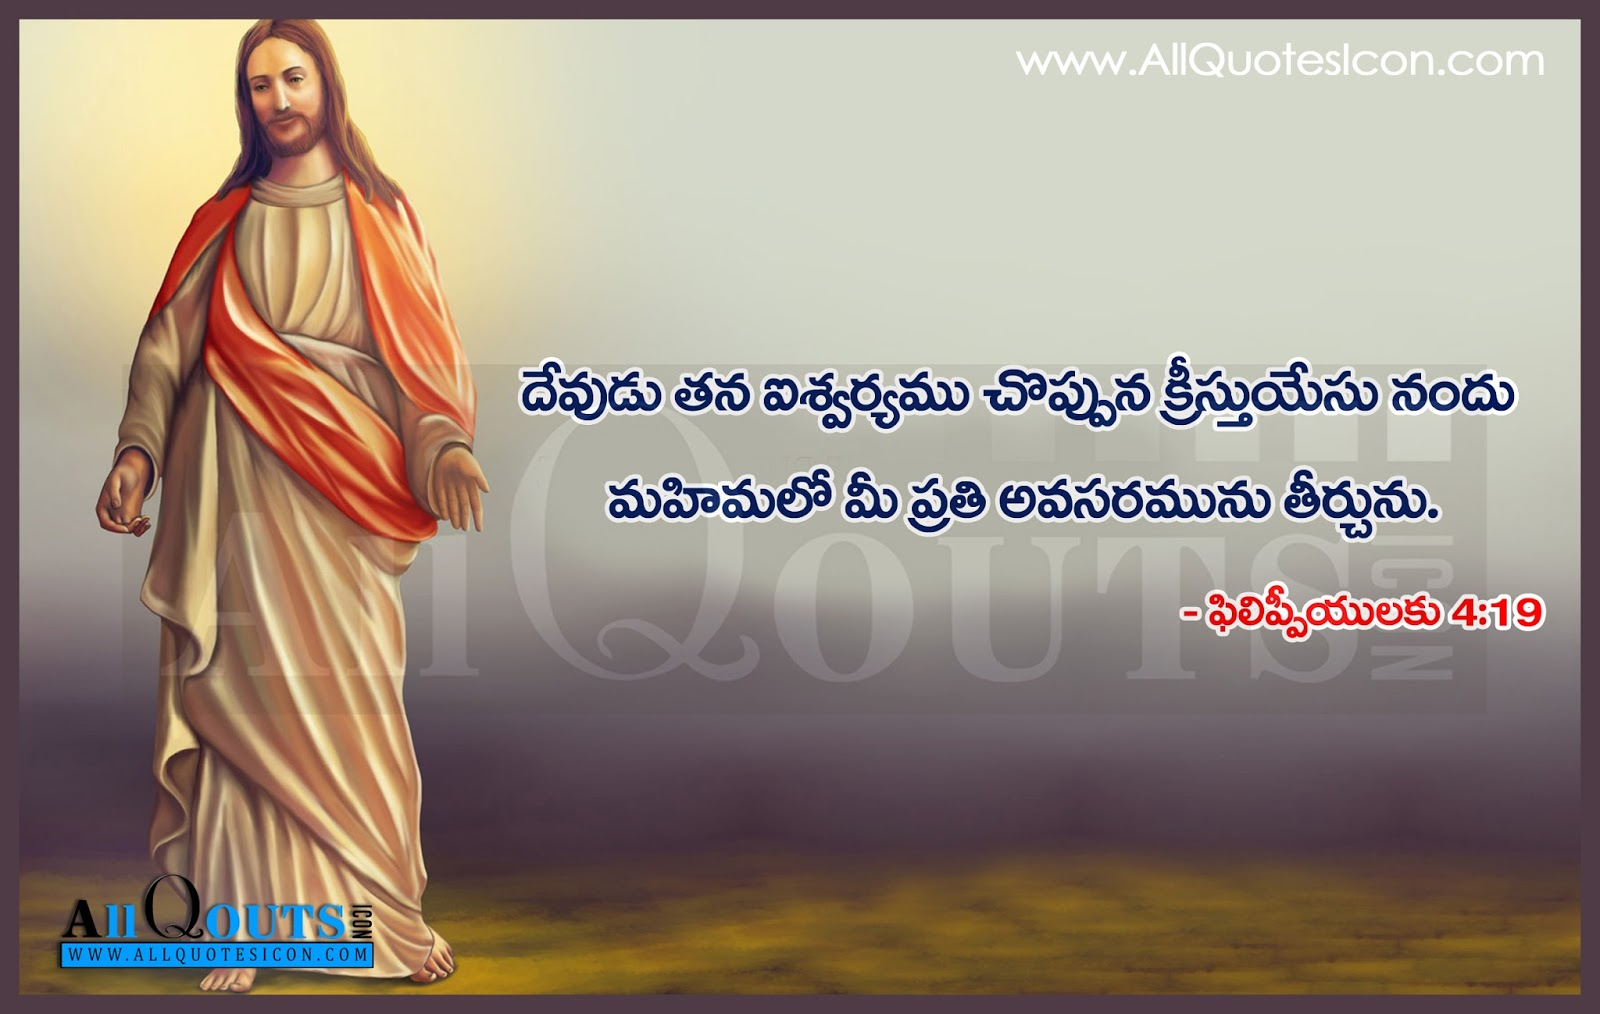 Jesus Christ Quotes In Telugu HD Wallpapers Best Bible Verses Quotations Images